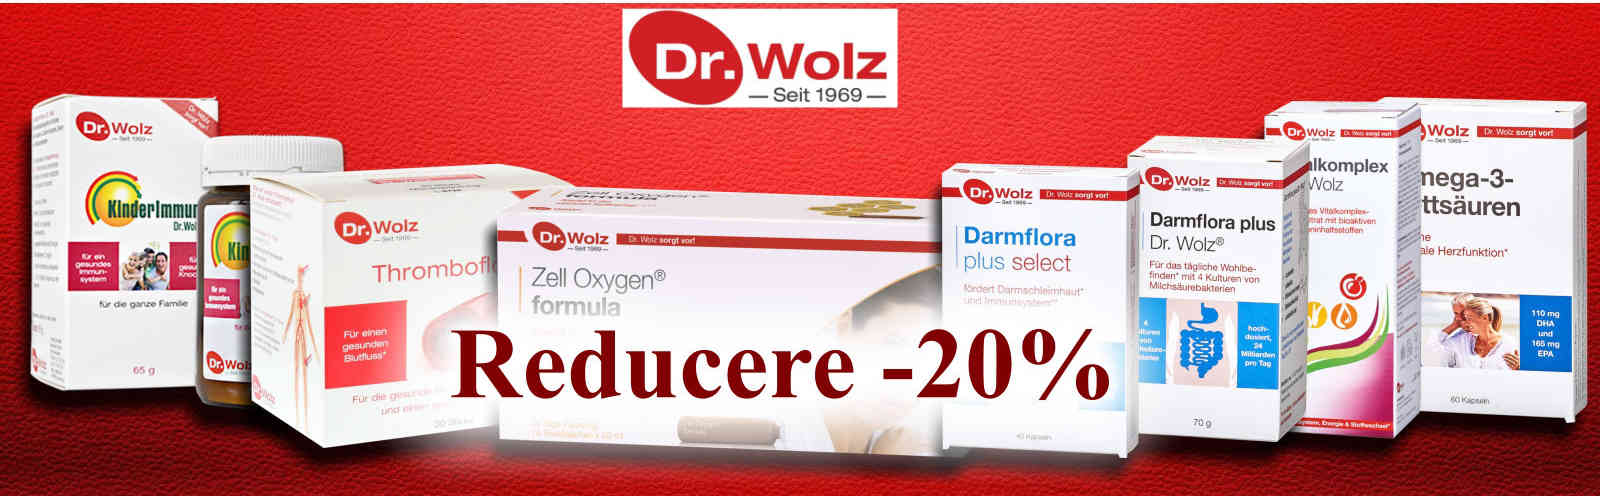 Dr. Wolz - Reducere 20%